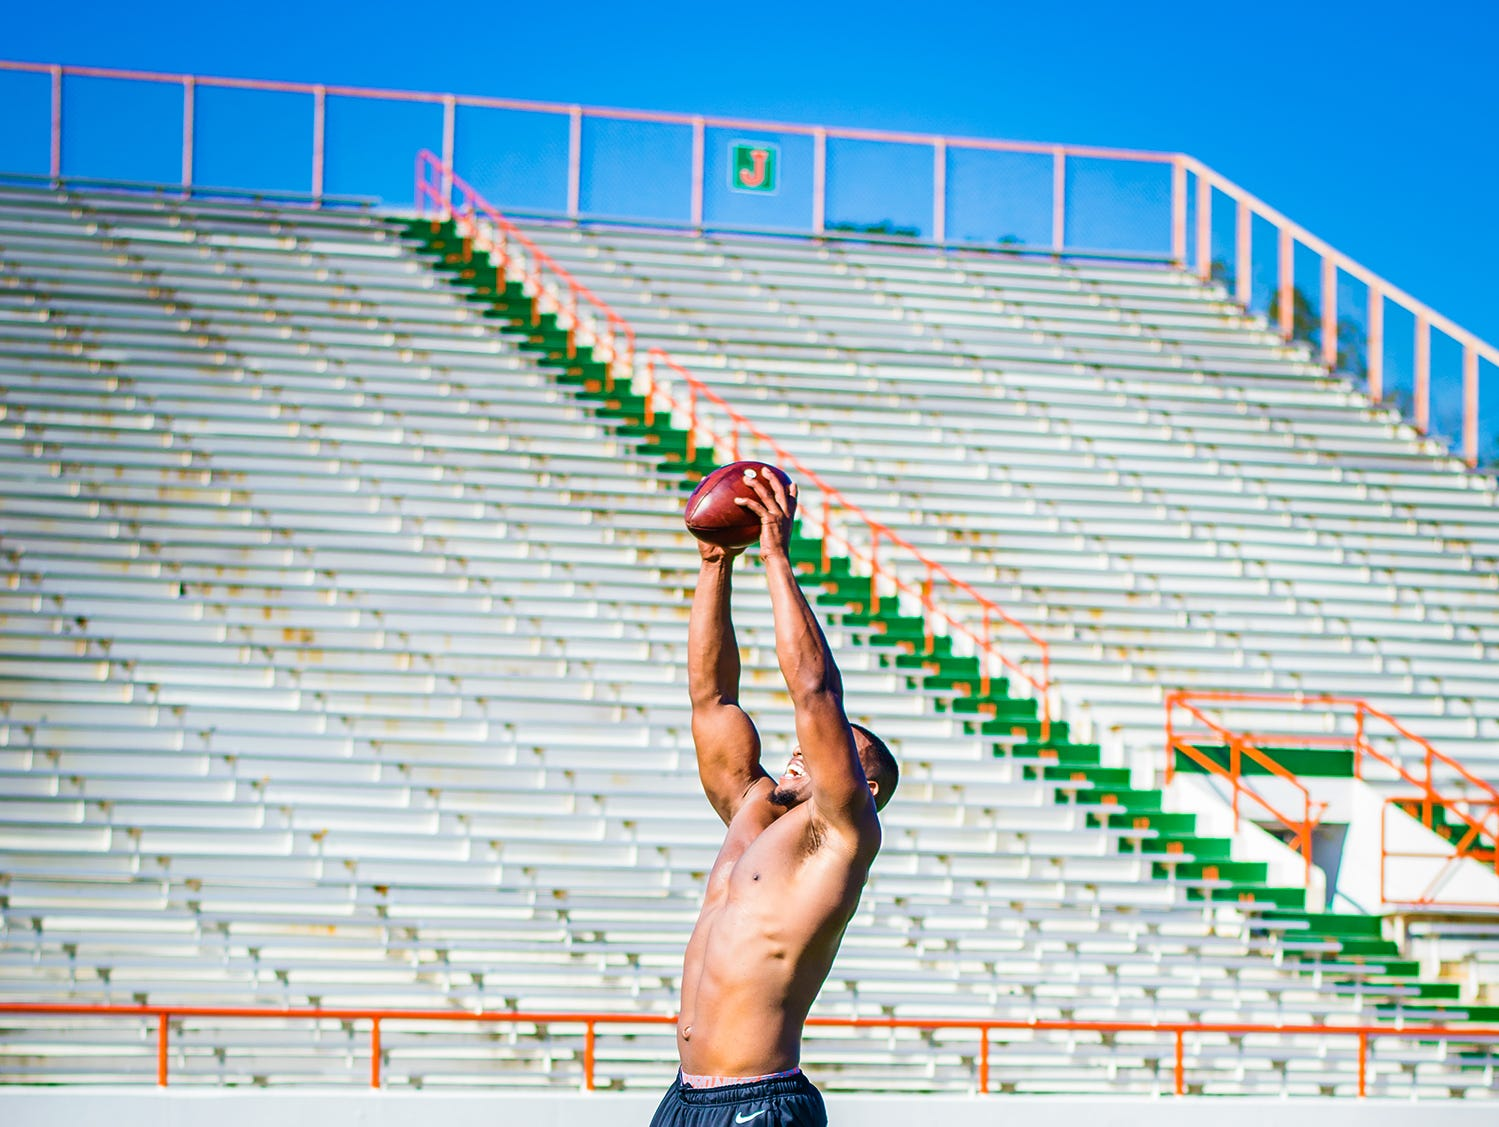 Former FAMU star Akil Blount leaps for a catch at Bragg Memorial Stadium. Blount will make his pro debut with the Orlando Apollos of the Alliance of American Football in February 2019.